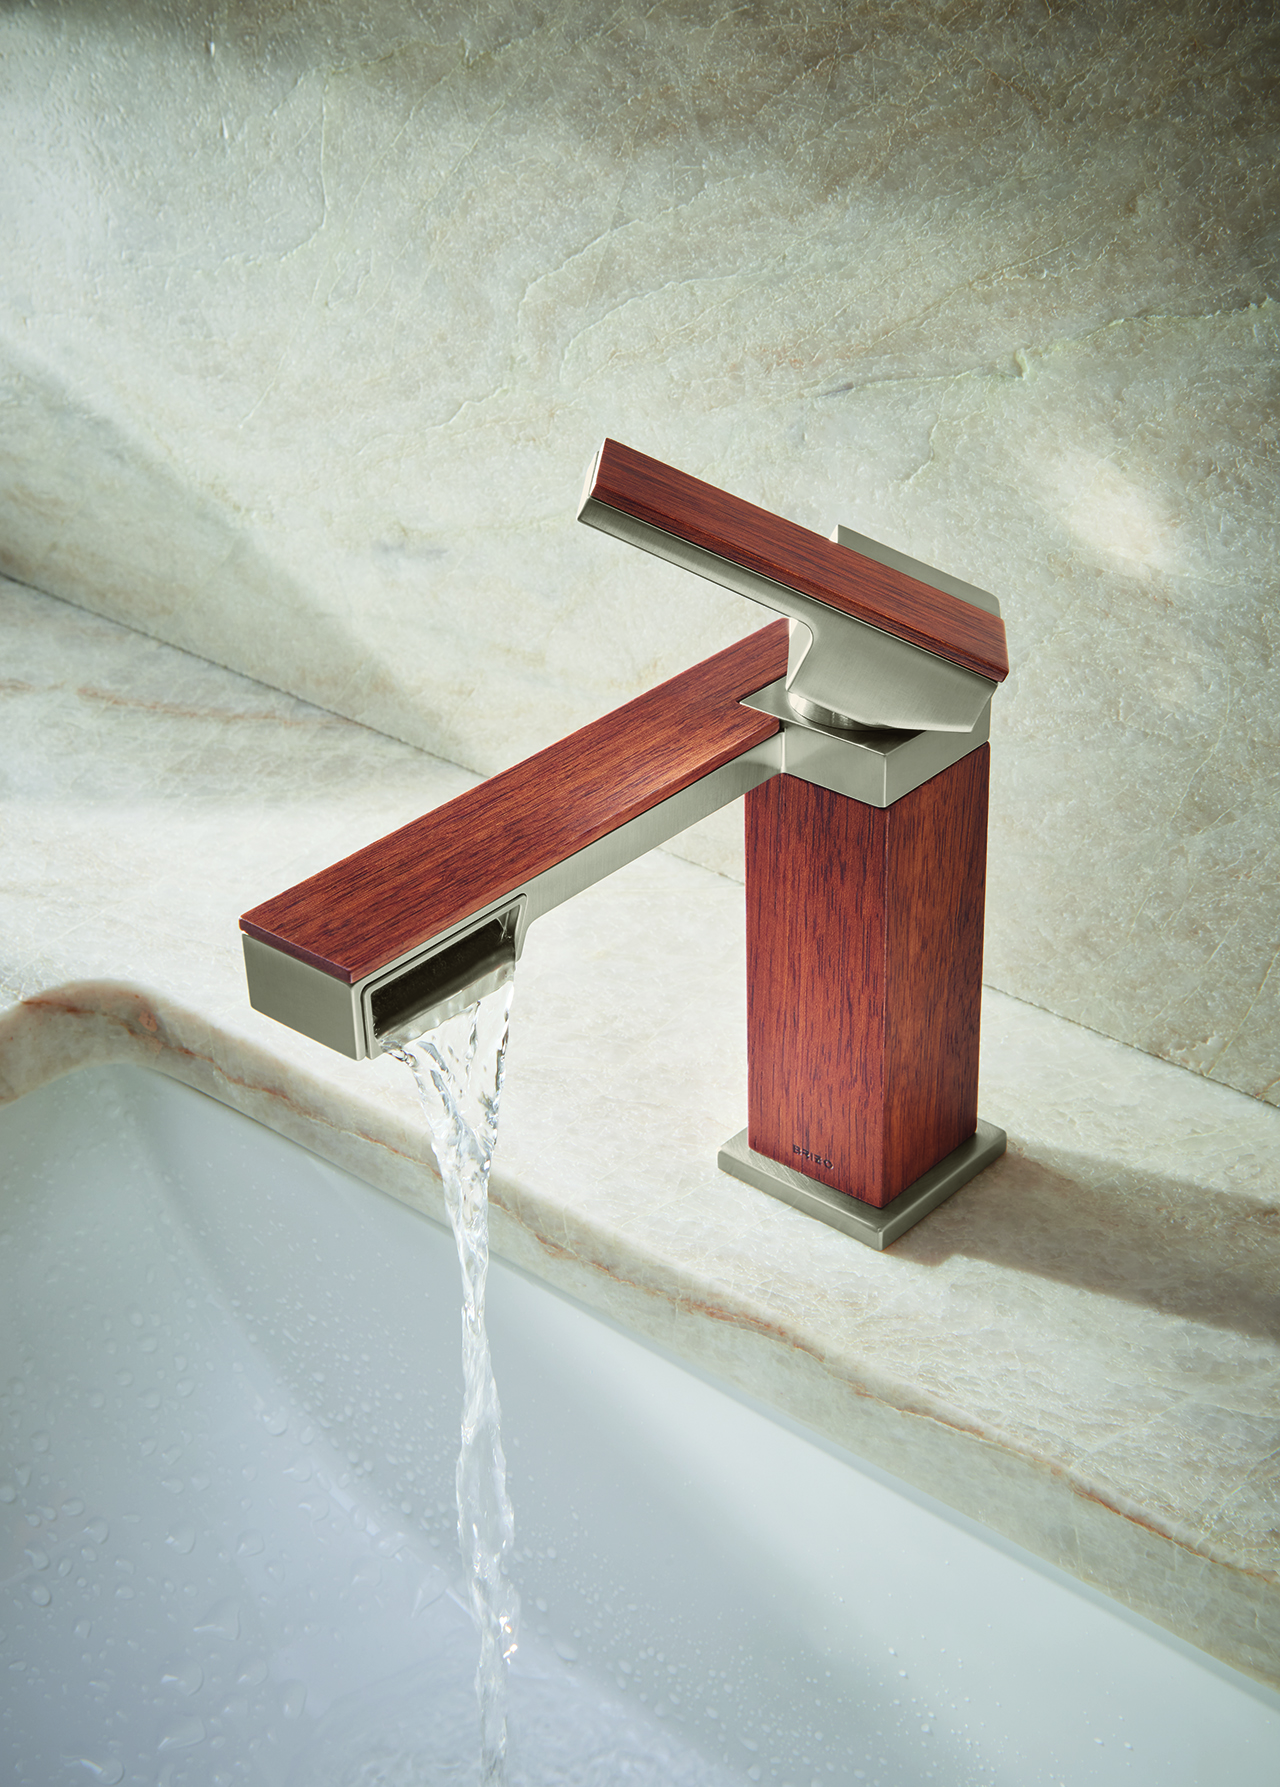 single handlr faucet in teak wood and metal turned on and flowing into sink